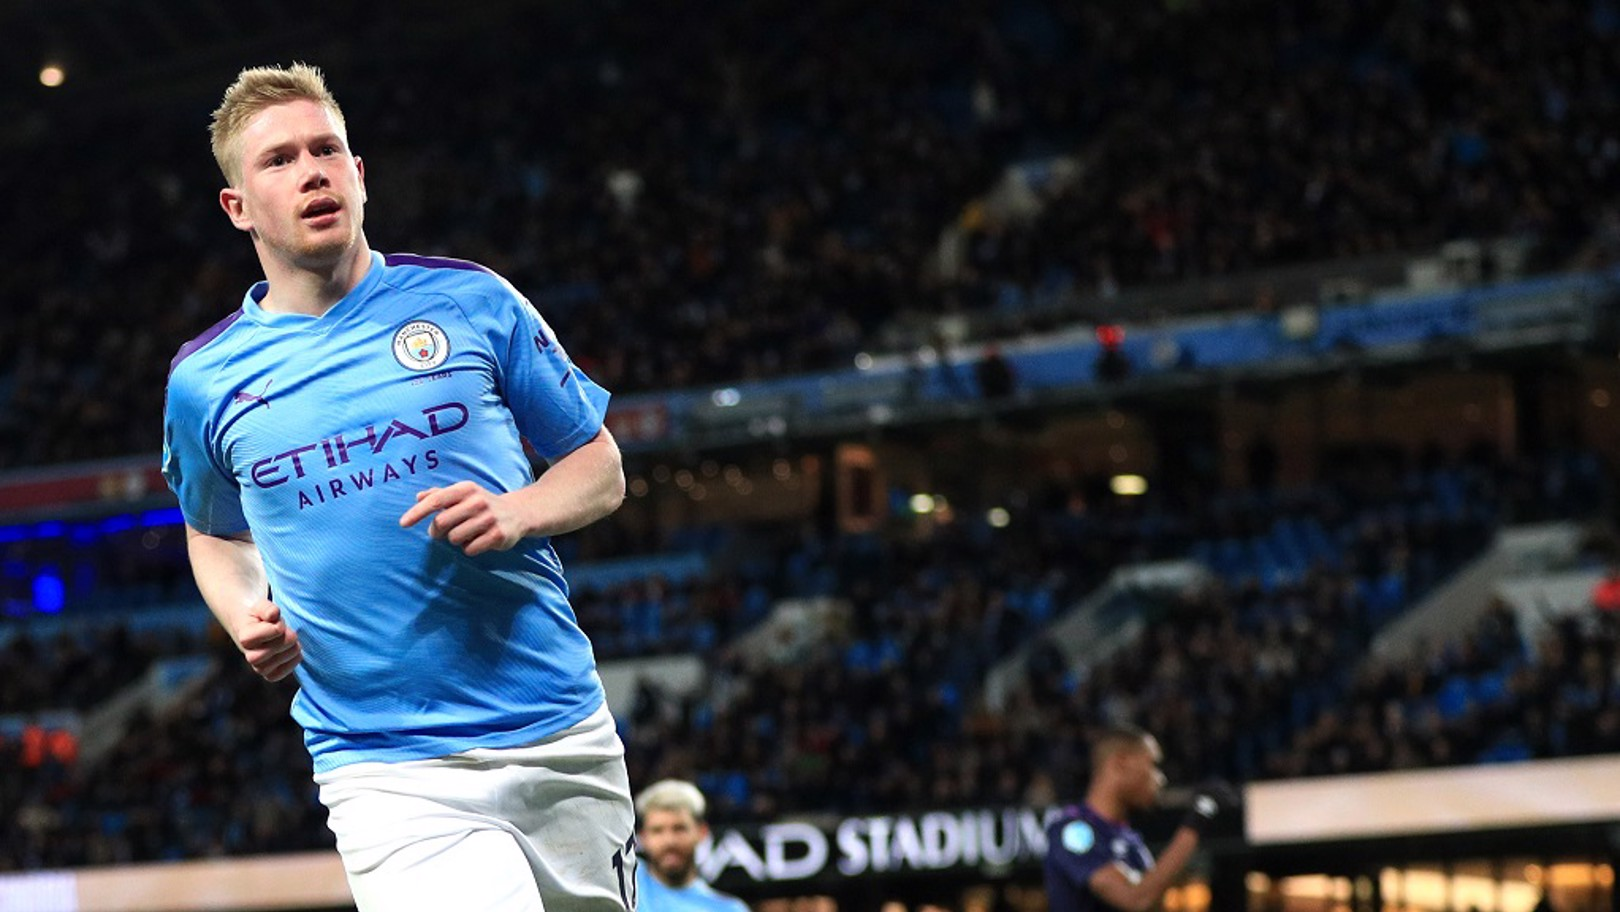 New date for City's clash with Liverpool